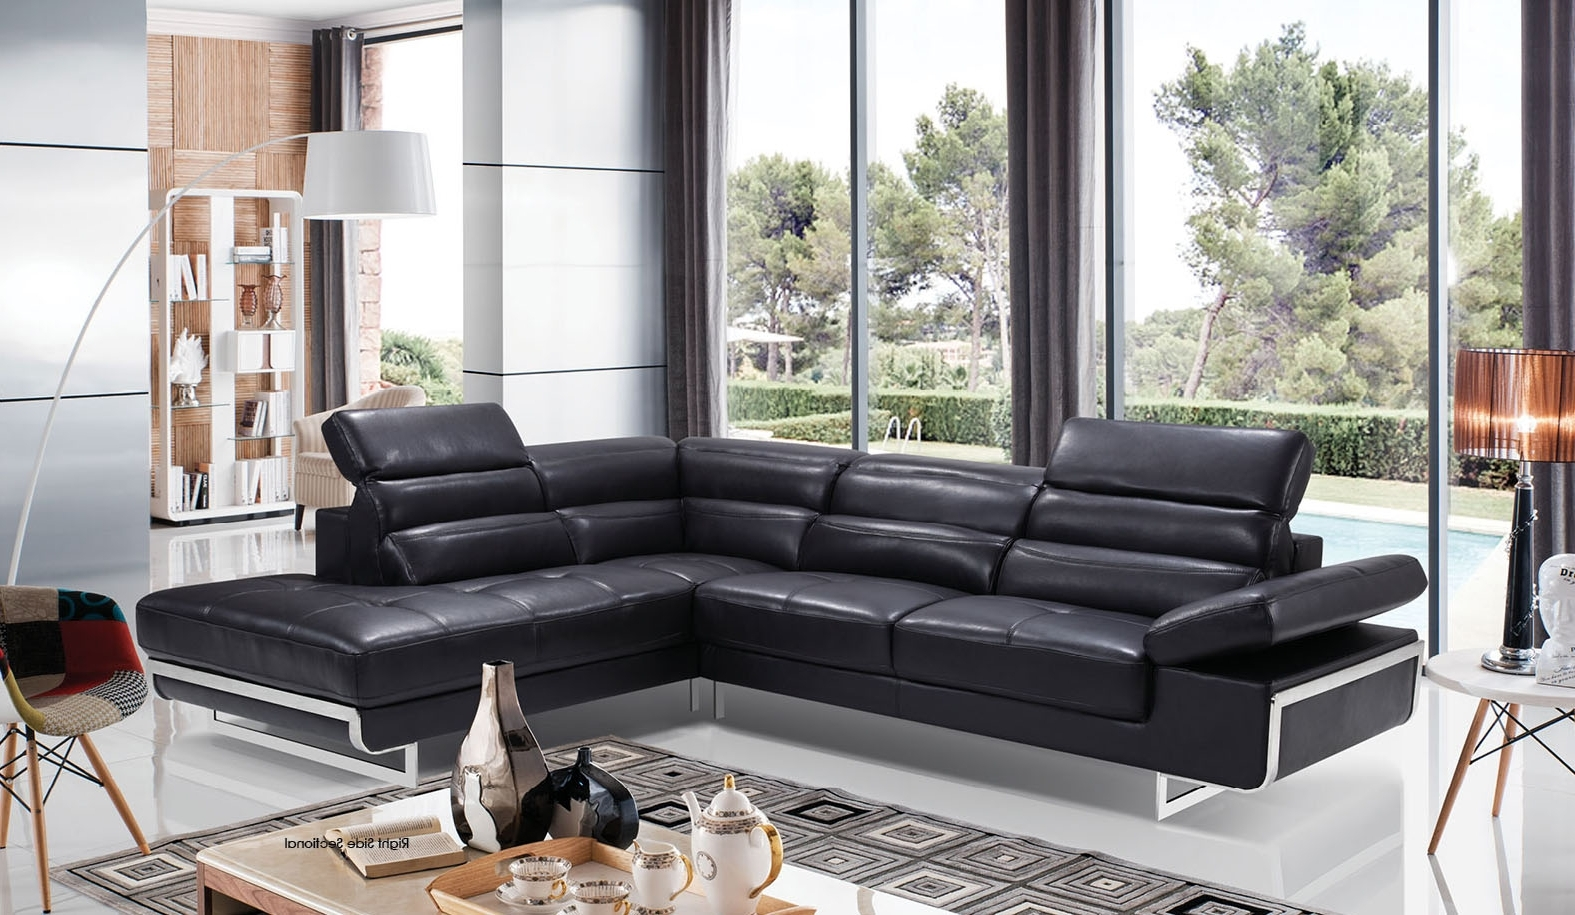 Well Known High Class Italian Leather Living Room Furniture Jacksonville With Regard To Jacksonville Florida Sectional Sofas (View 4 of 20)